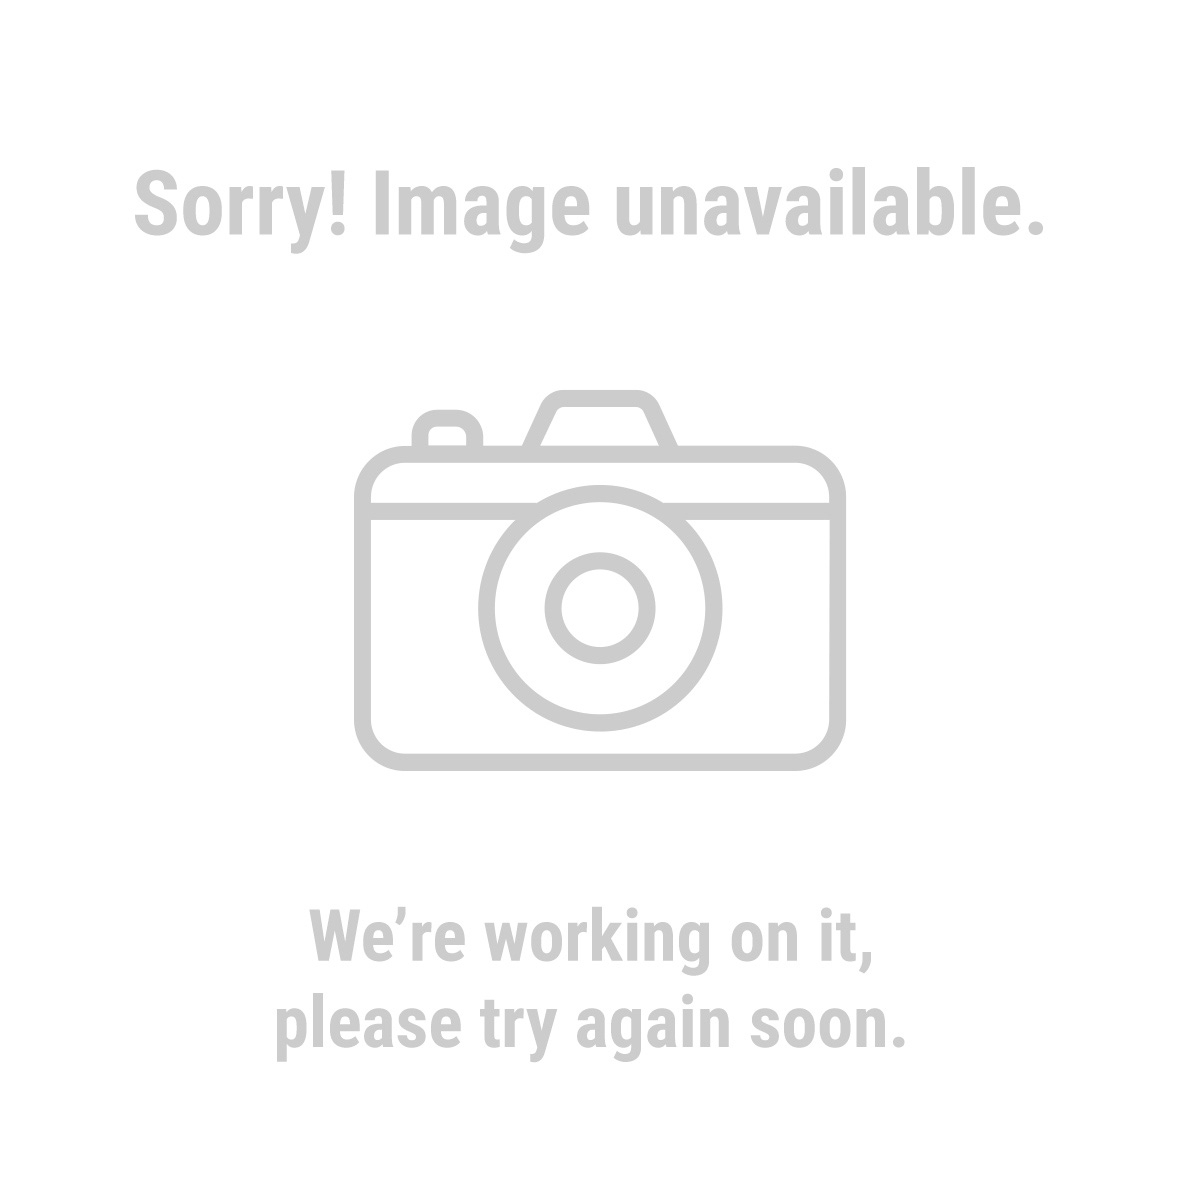 7 Quot Portable Wet Cutting Tile Saw